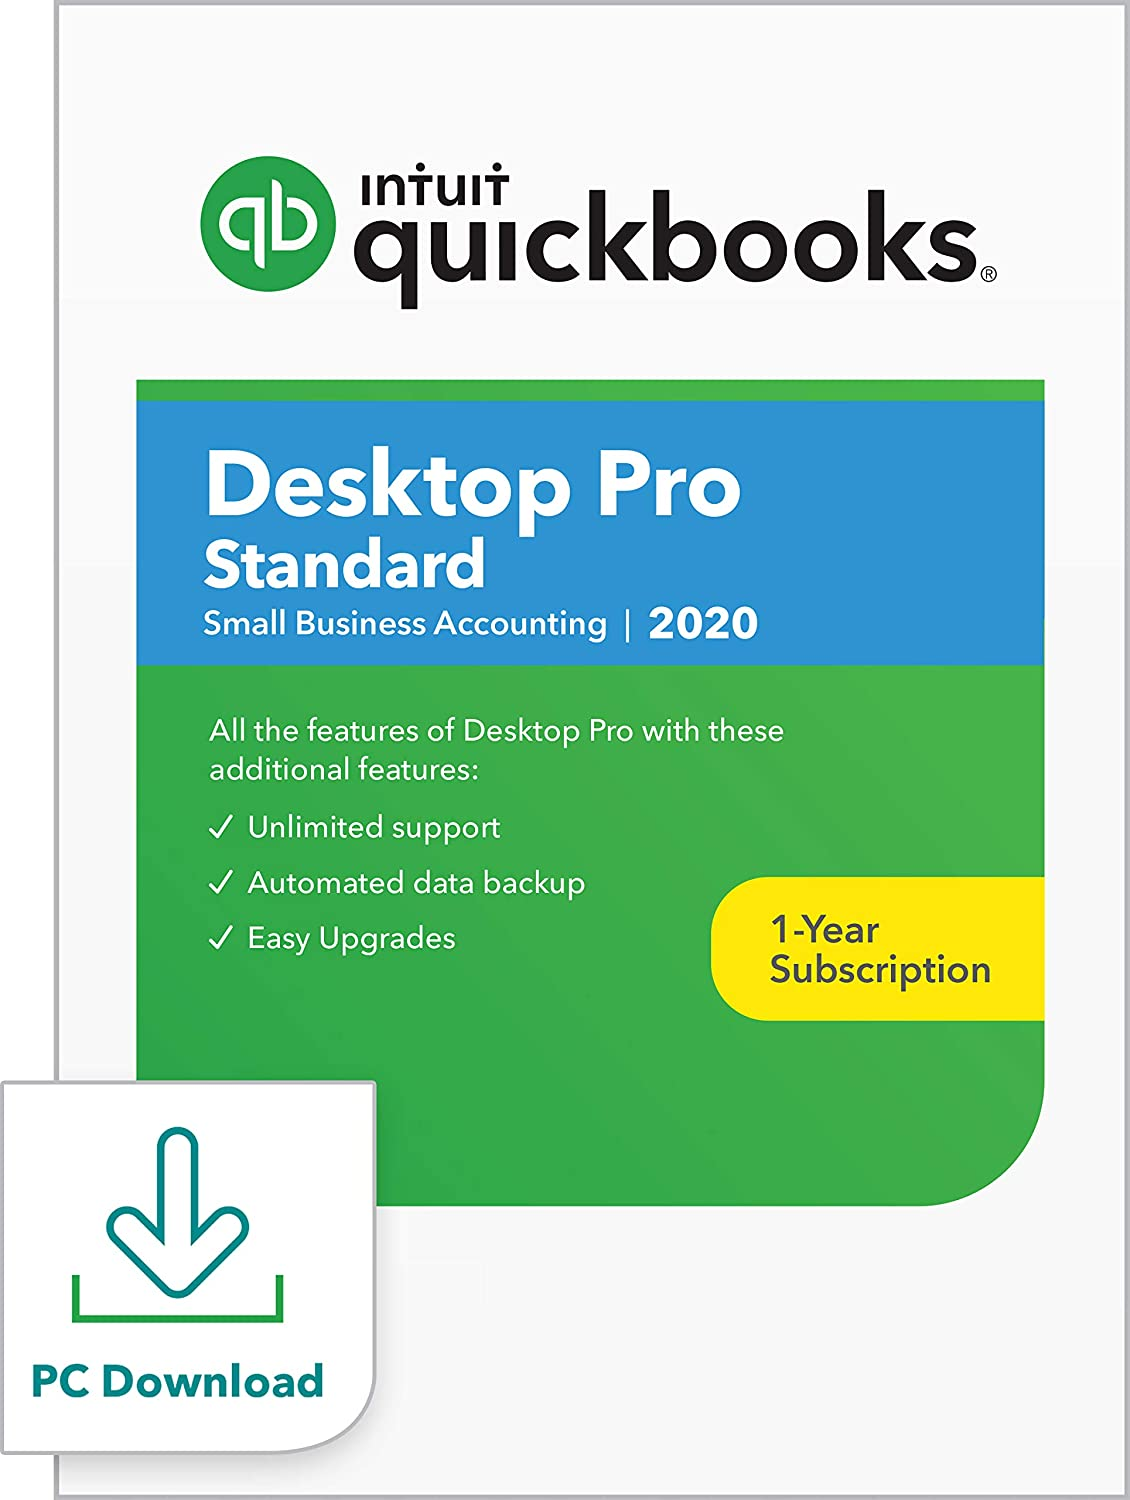 QuickBooks Desktop Pro Plus (Standard) 2020 Accounting Software for Small Business [PC Download]